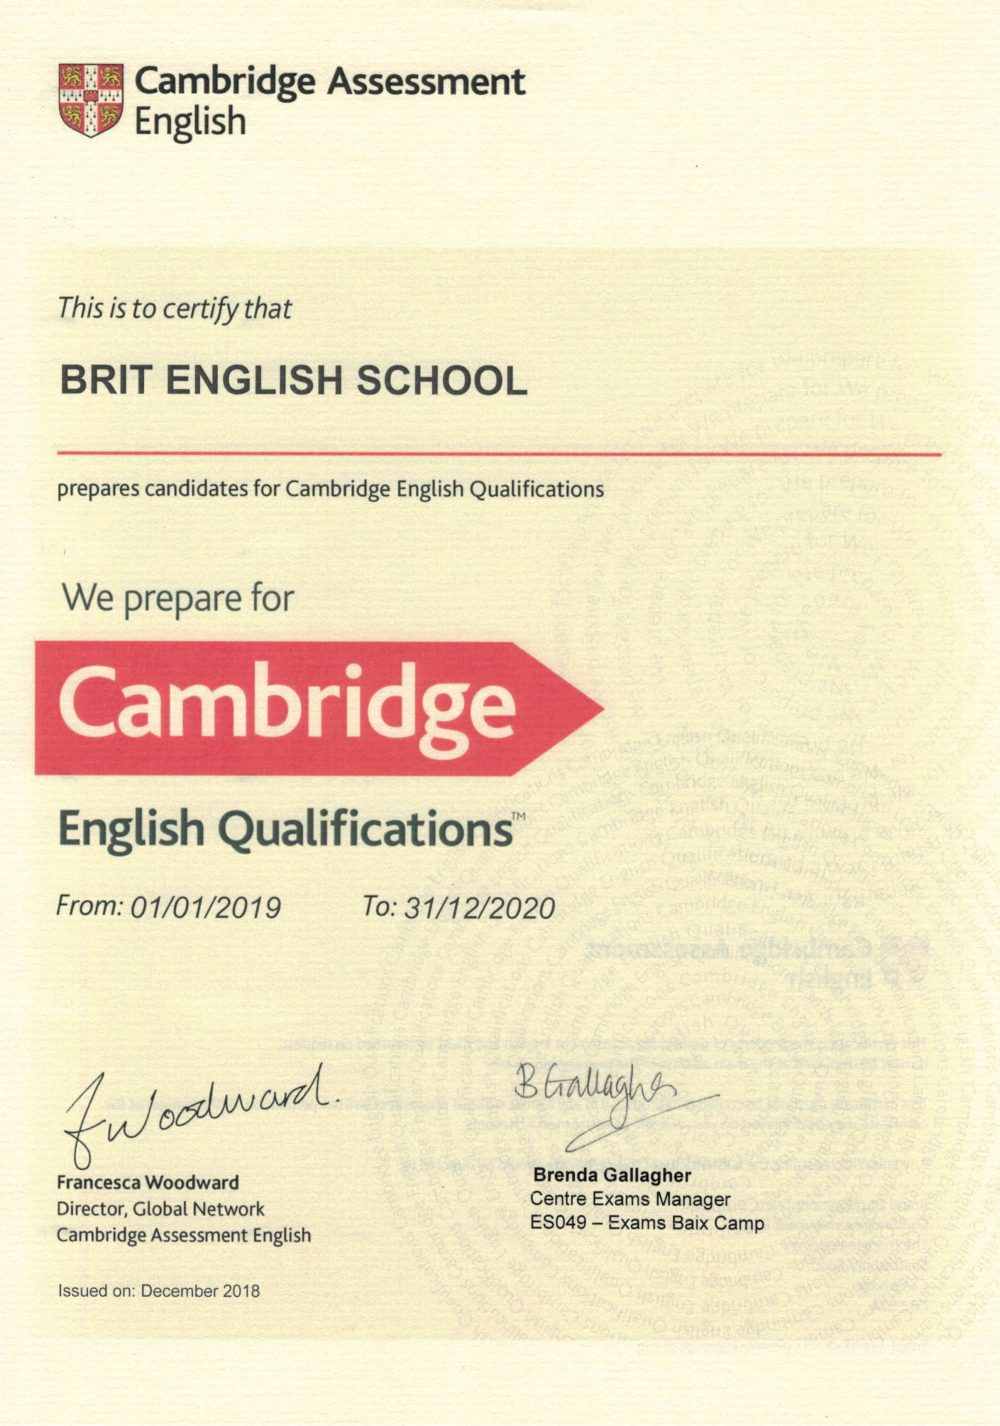 CERTIFICADO-CAMBRIDGE-BRIT-ENGLISH-SCHOOL